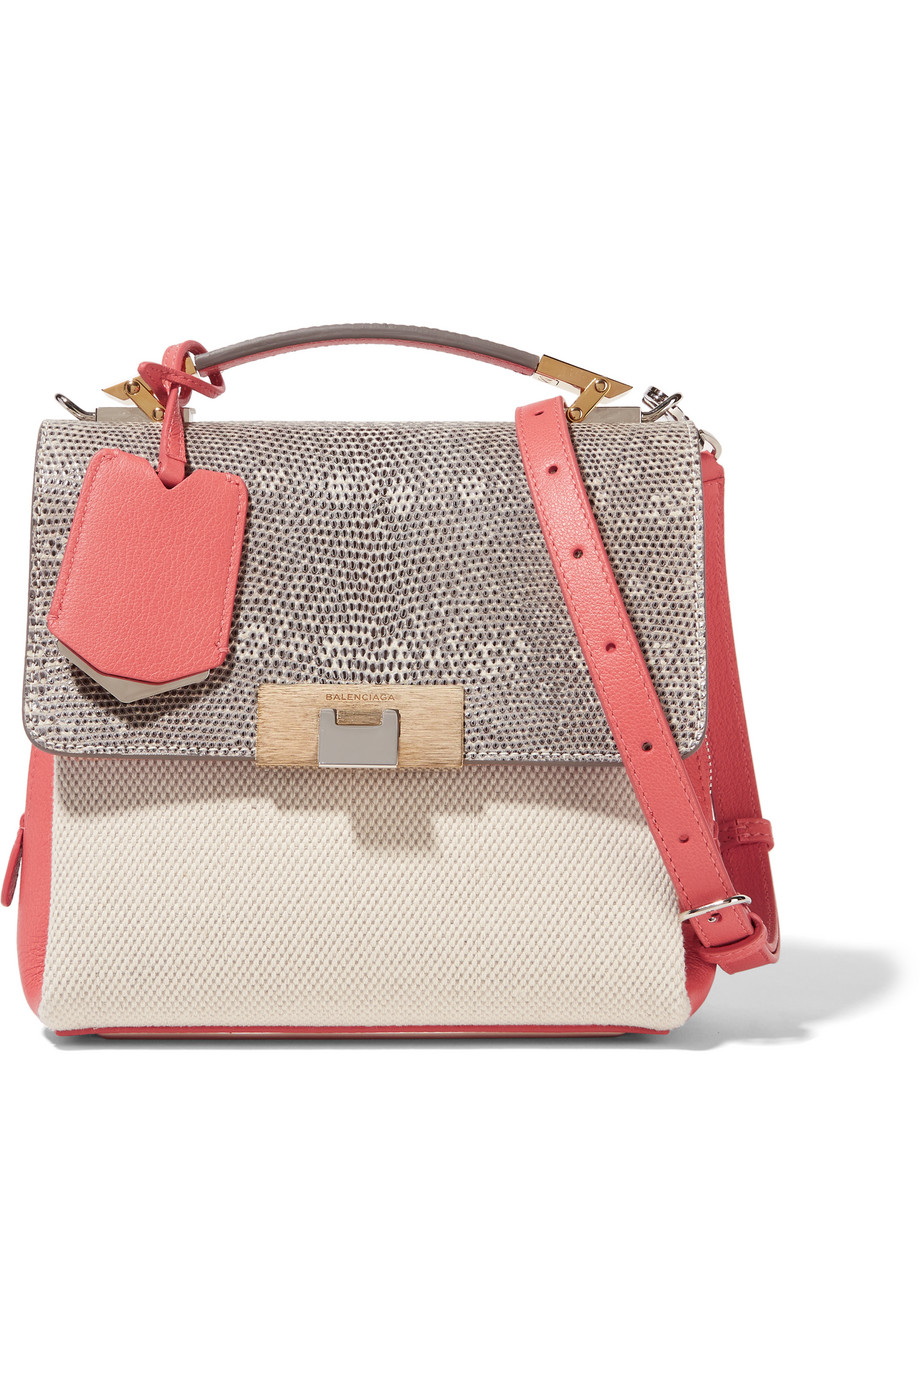 Balenciaga Le Dix Mini Snake-Effect Leather and Canvas Shoulder Bag, Off-White/Pink, Women's